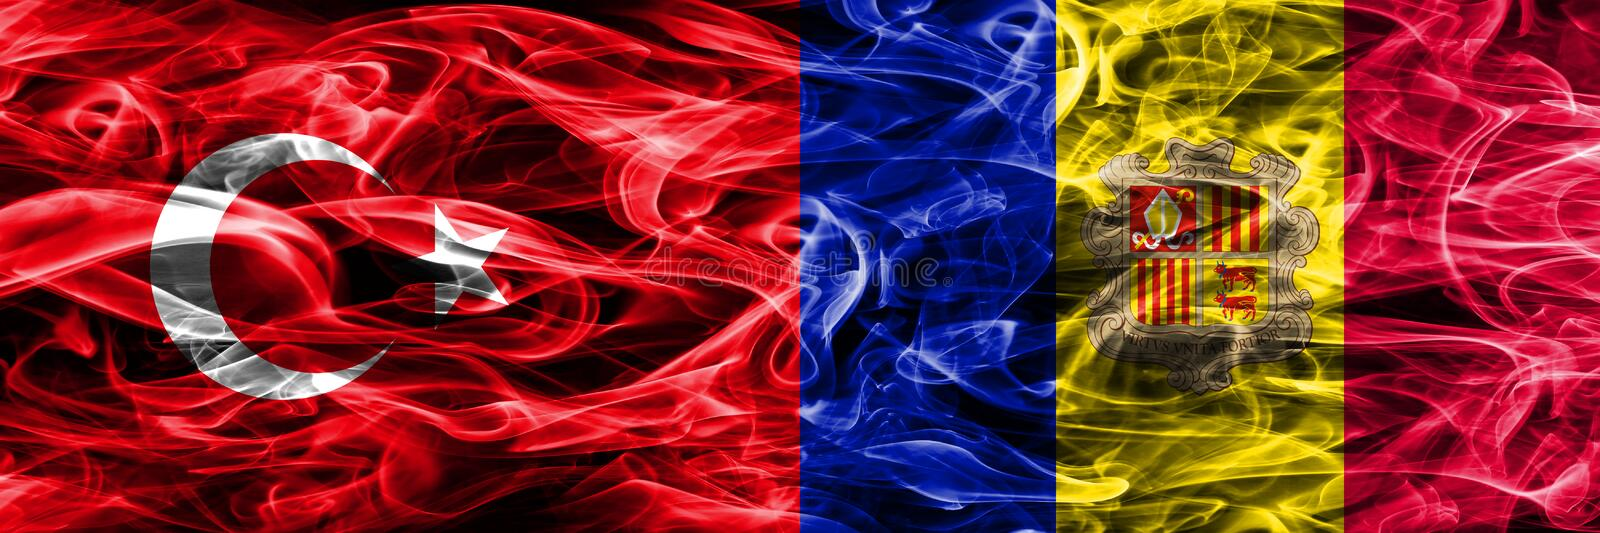 Turkey vs Andorra smoke flags placed side by side. Turkish and Andorra flag together.  royalty free illustration